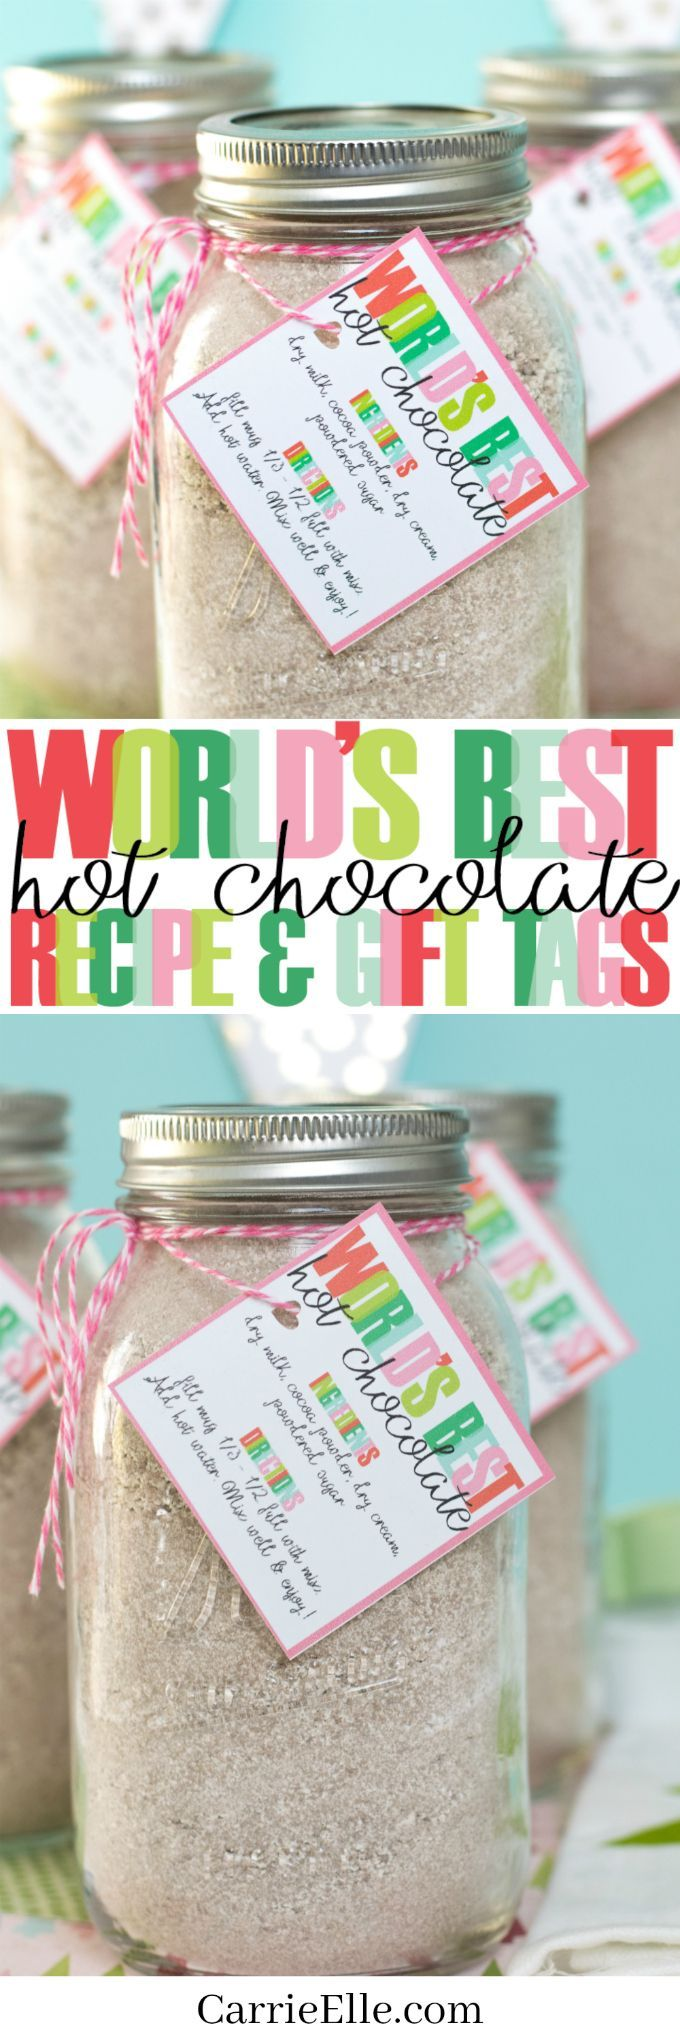 Worldus best hot chocolate recipe u printable gift tags perfect